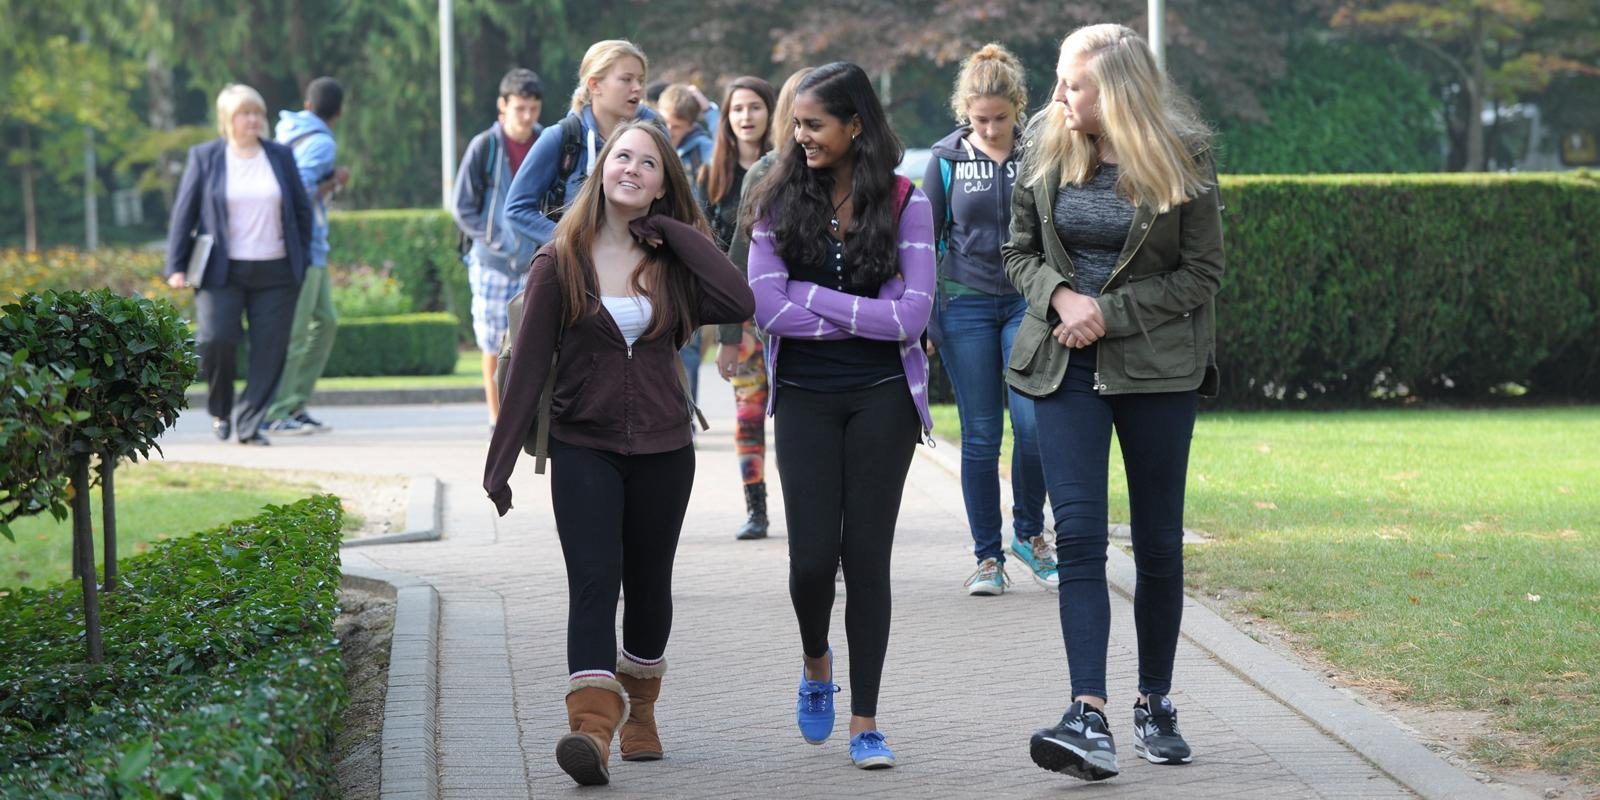 Three Egham students walking through the campus, smiling.